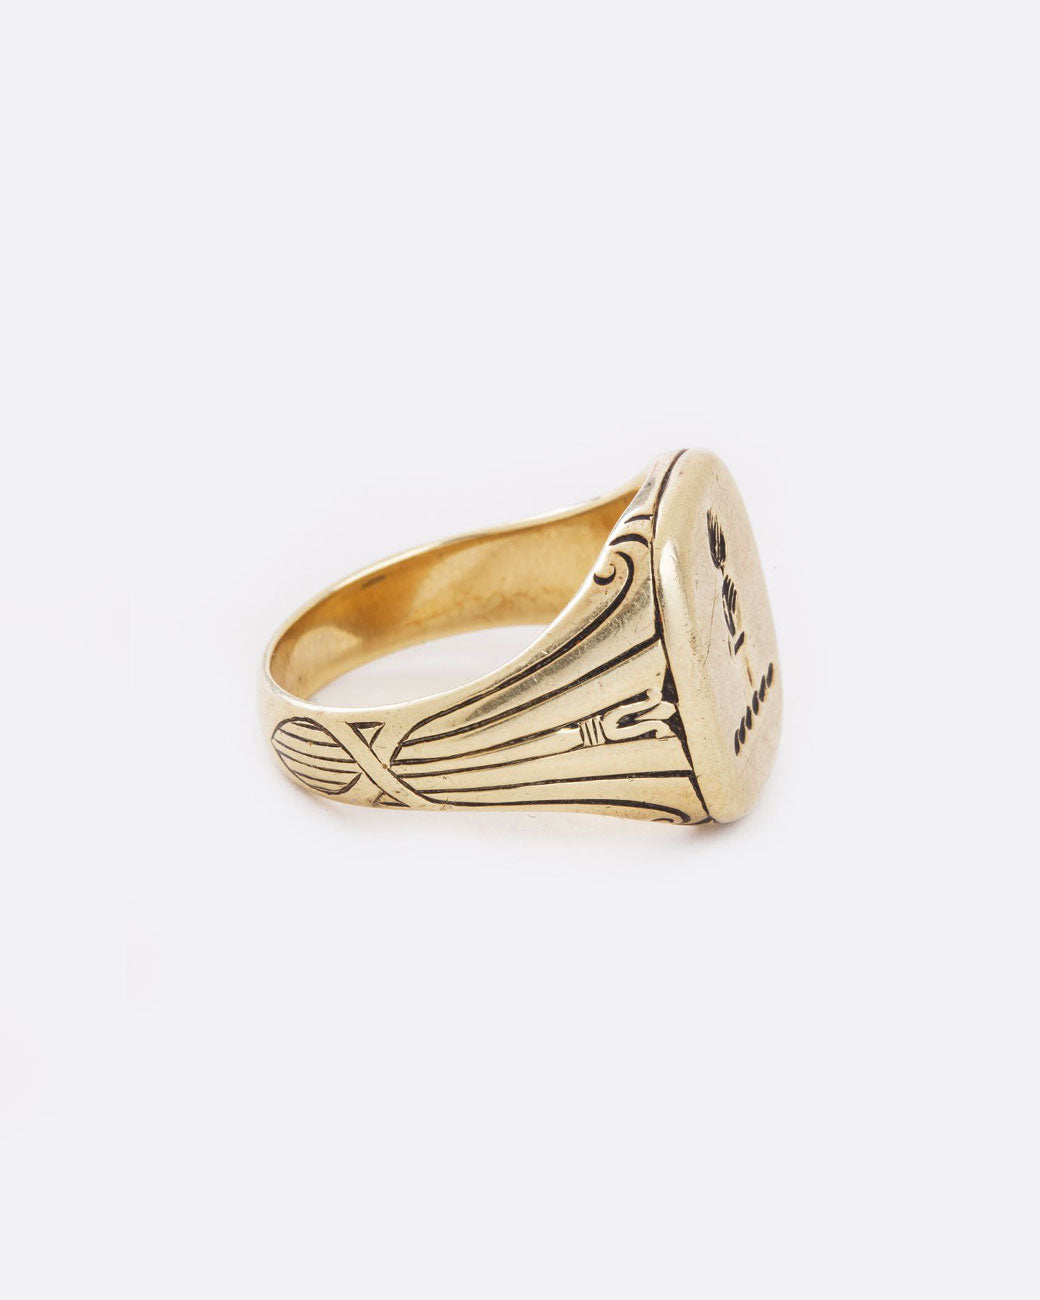 9e48371a92d06 Vintage Gold Signet Ring with Feather